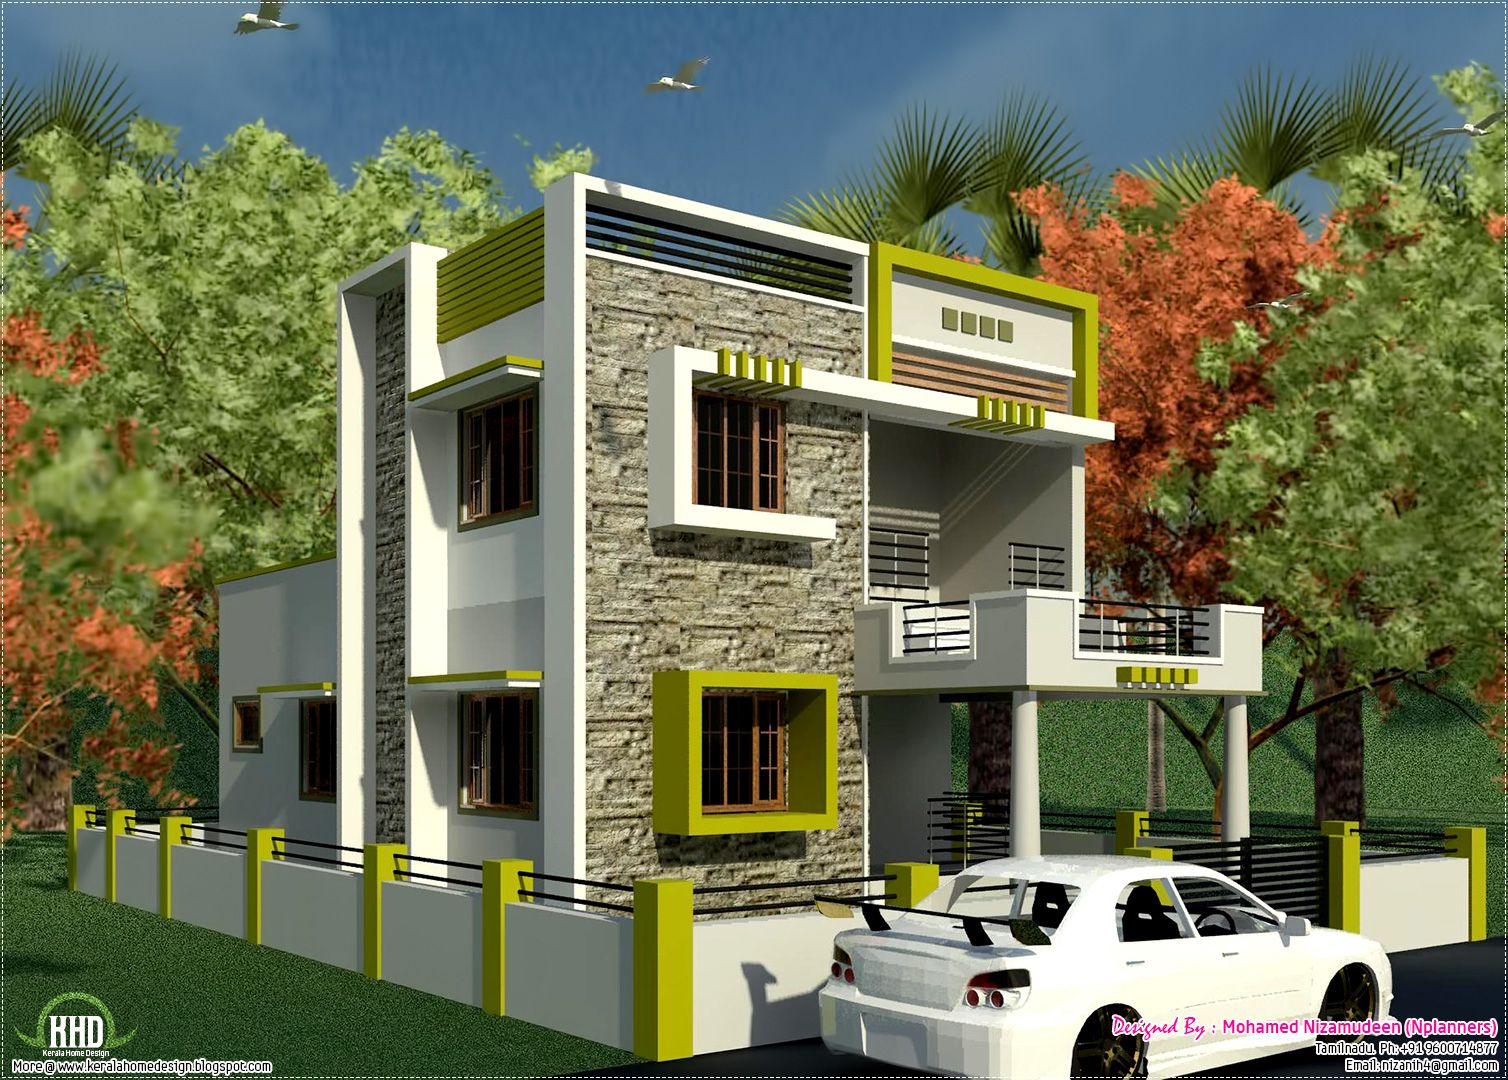 Small house with car park design tobfav com ideas for Indian small house design pictures